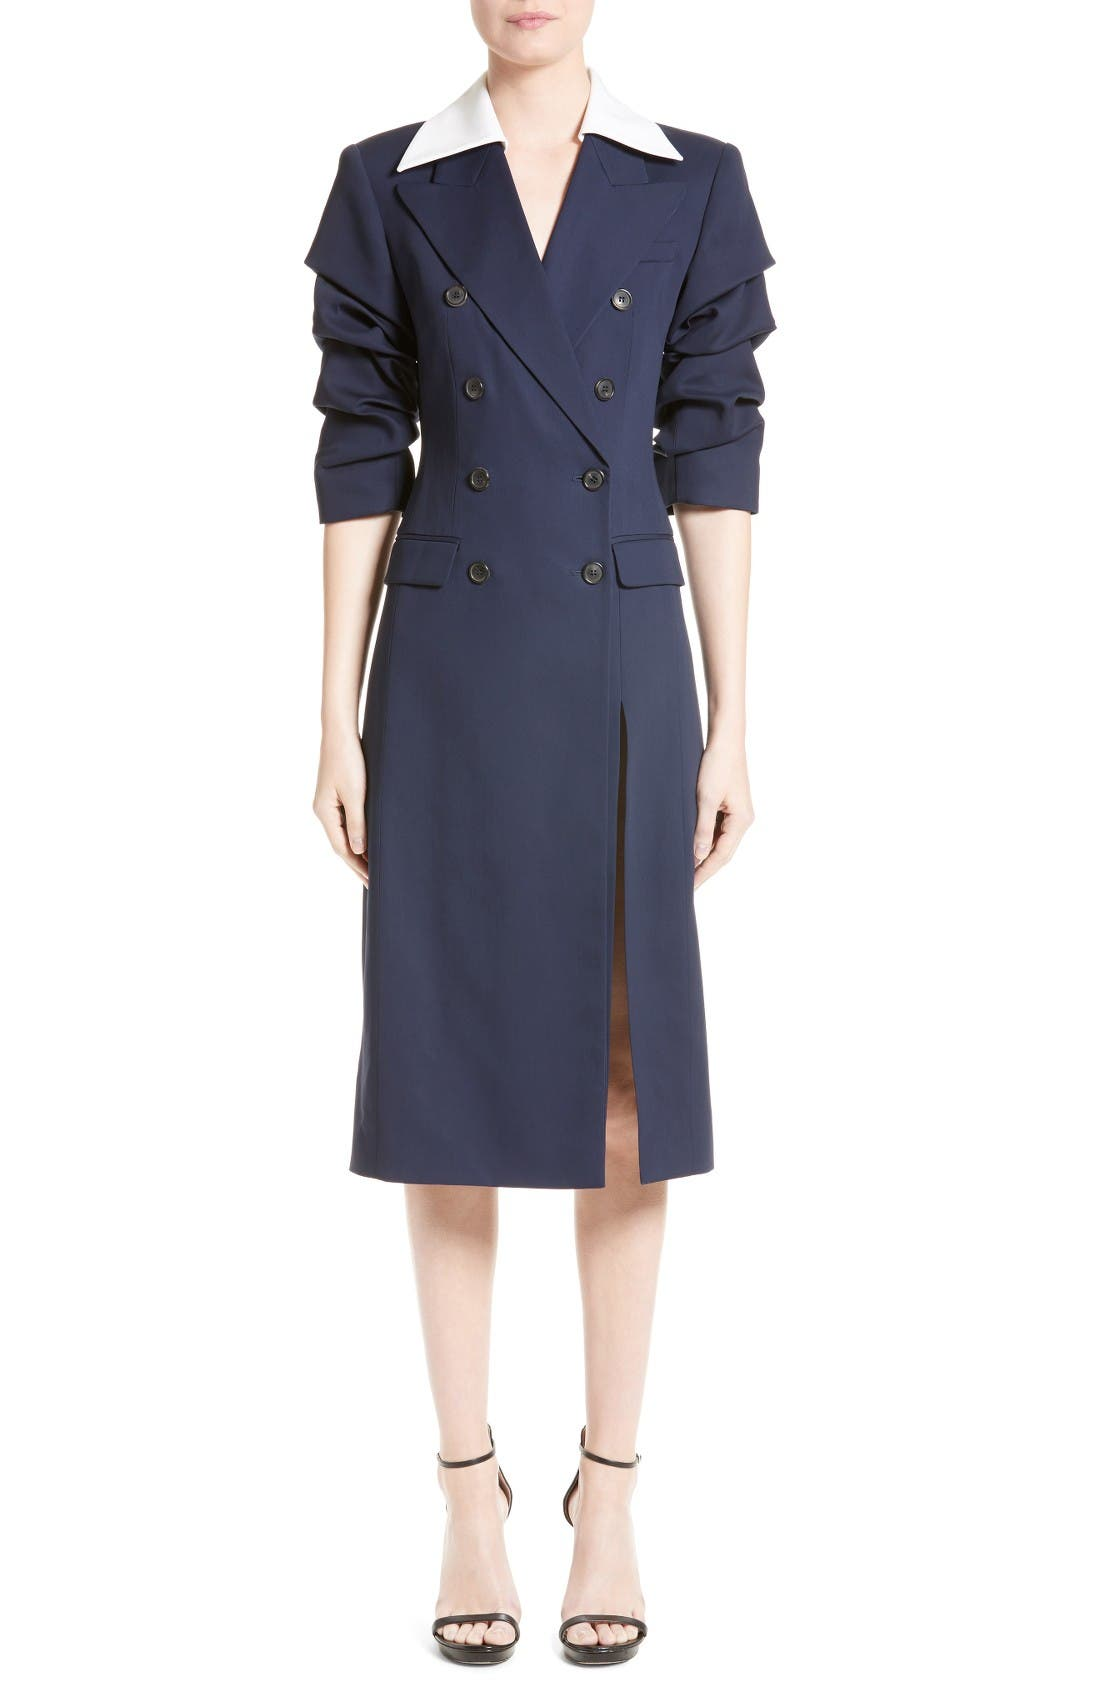 MICHAEL KORS Wool & Silk Coat Dress